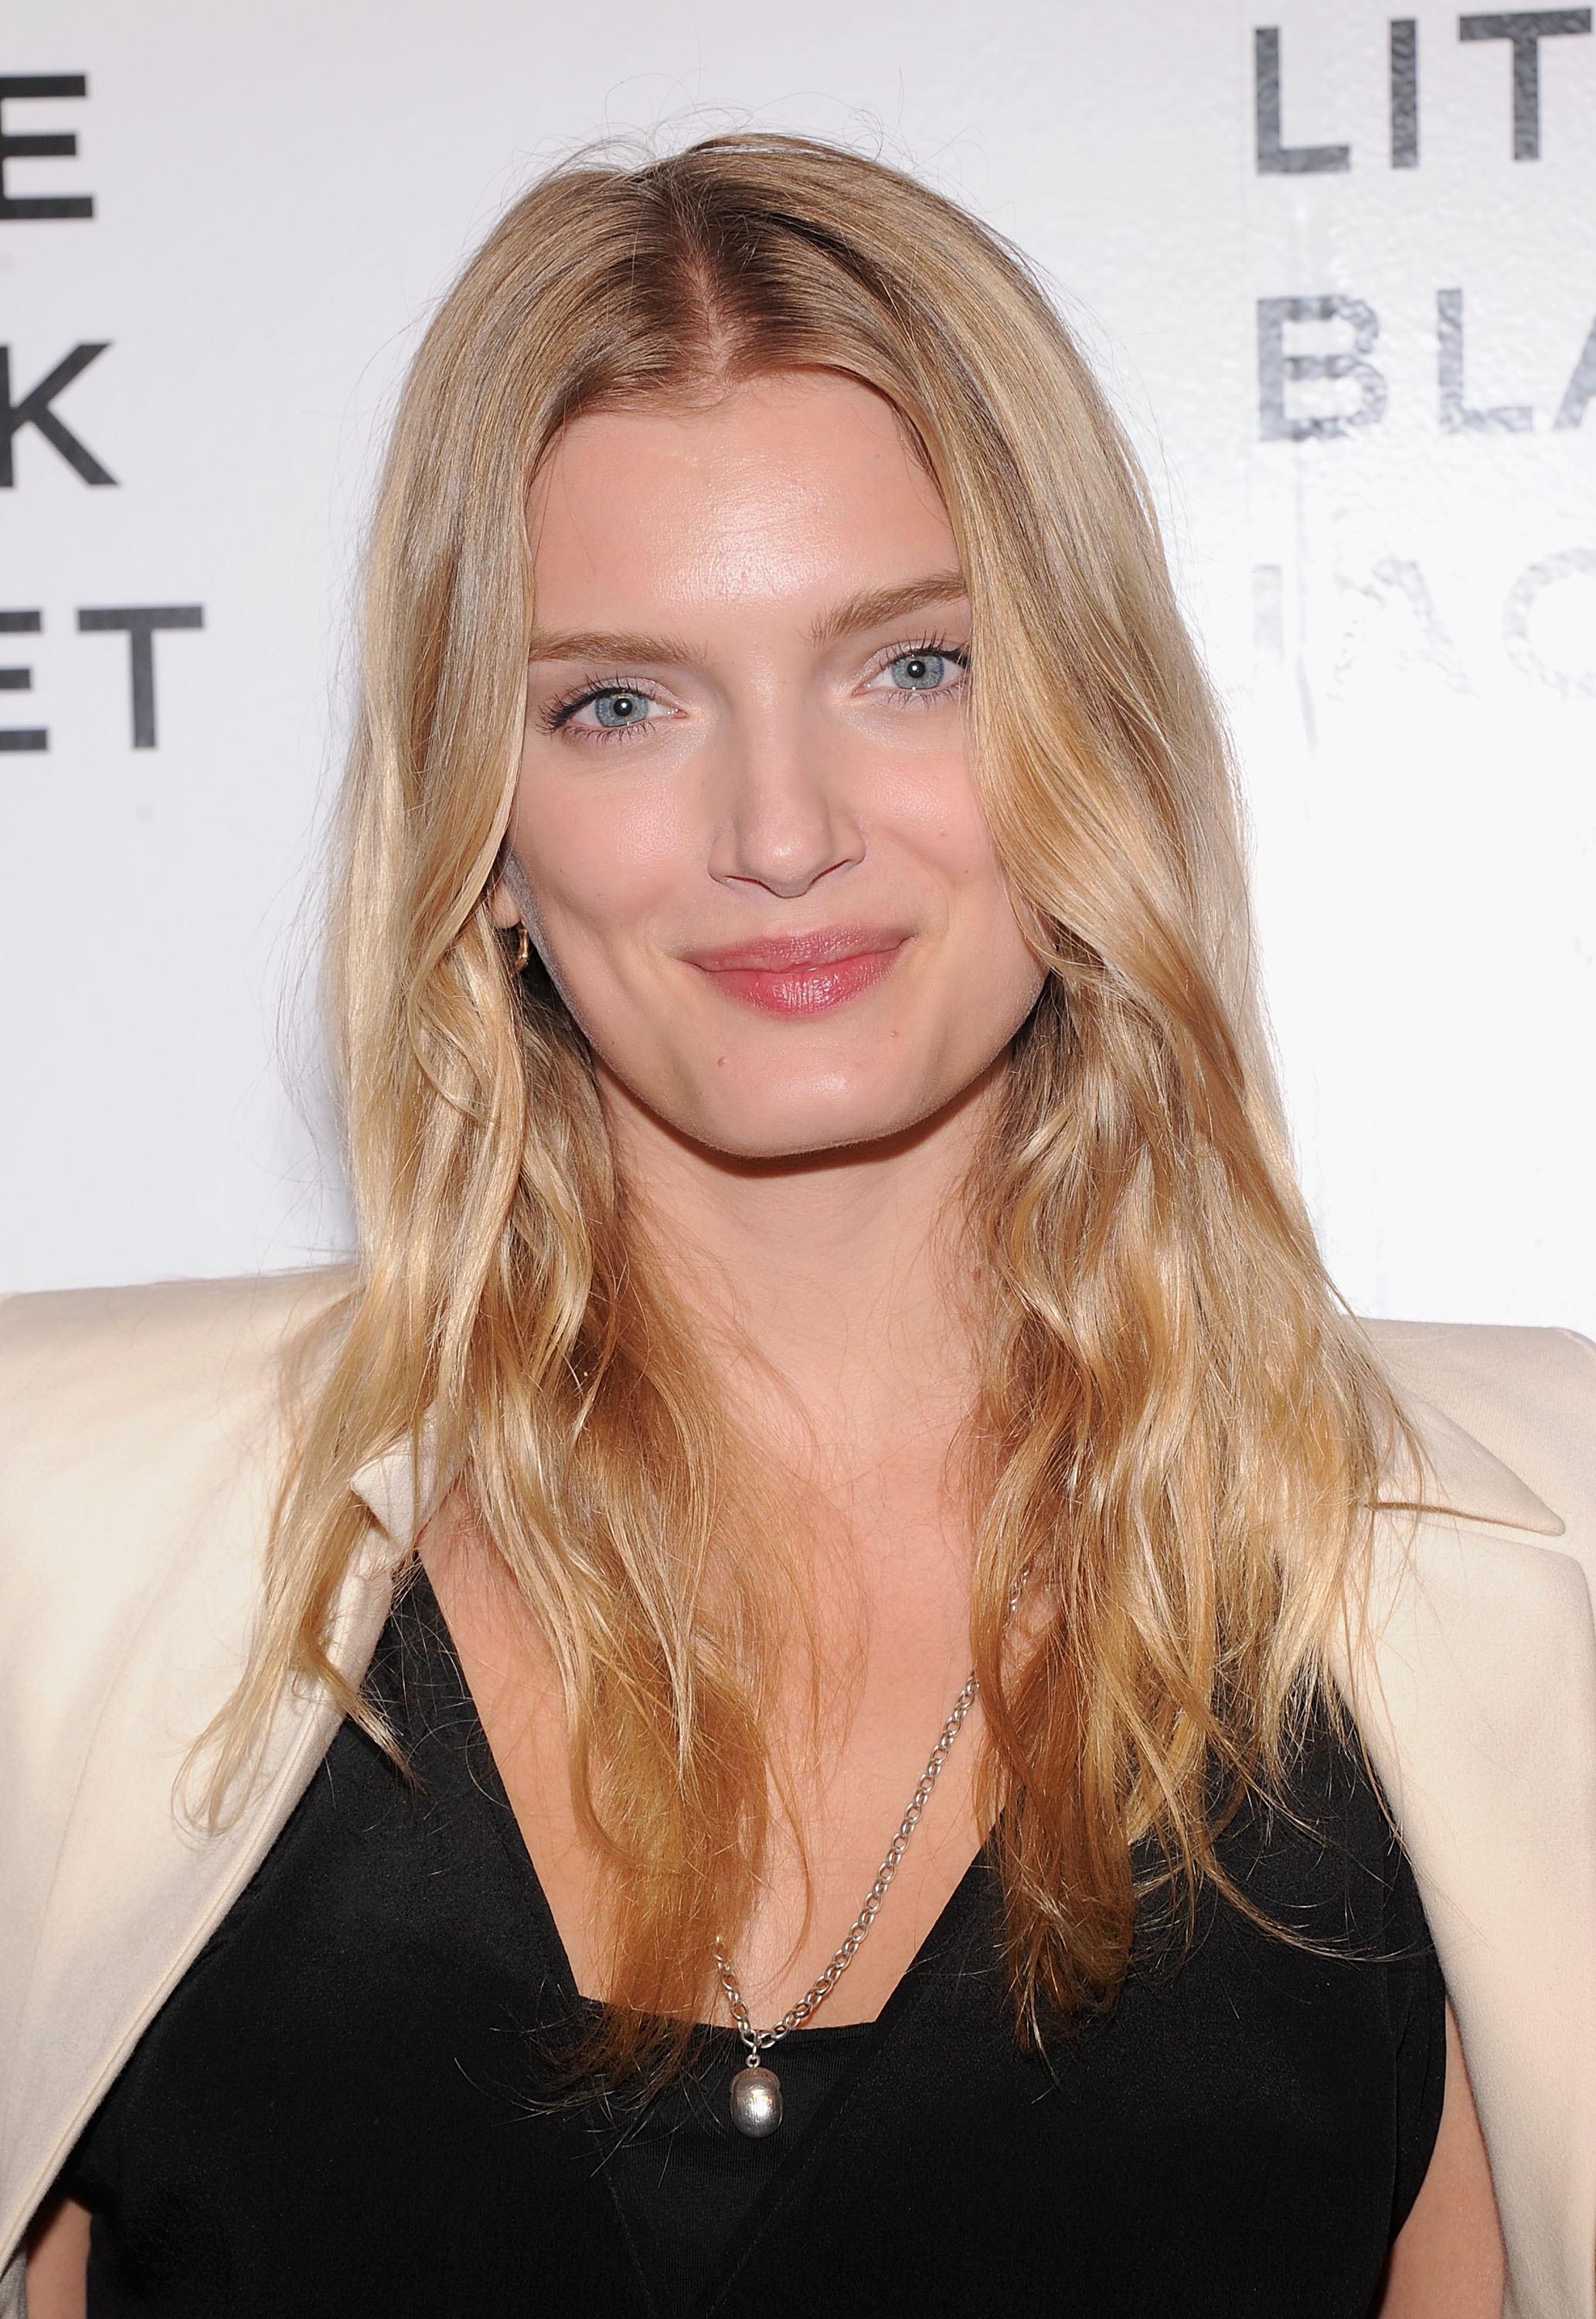 Lily Donaldson earned a  million dollar salary - leaving the net worth at 5 million in 2017